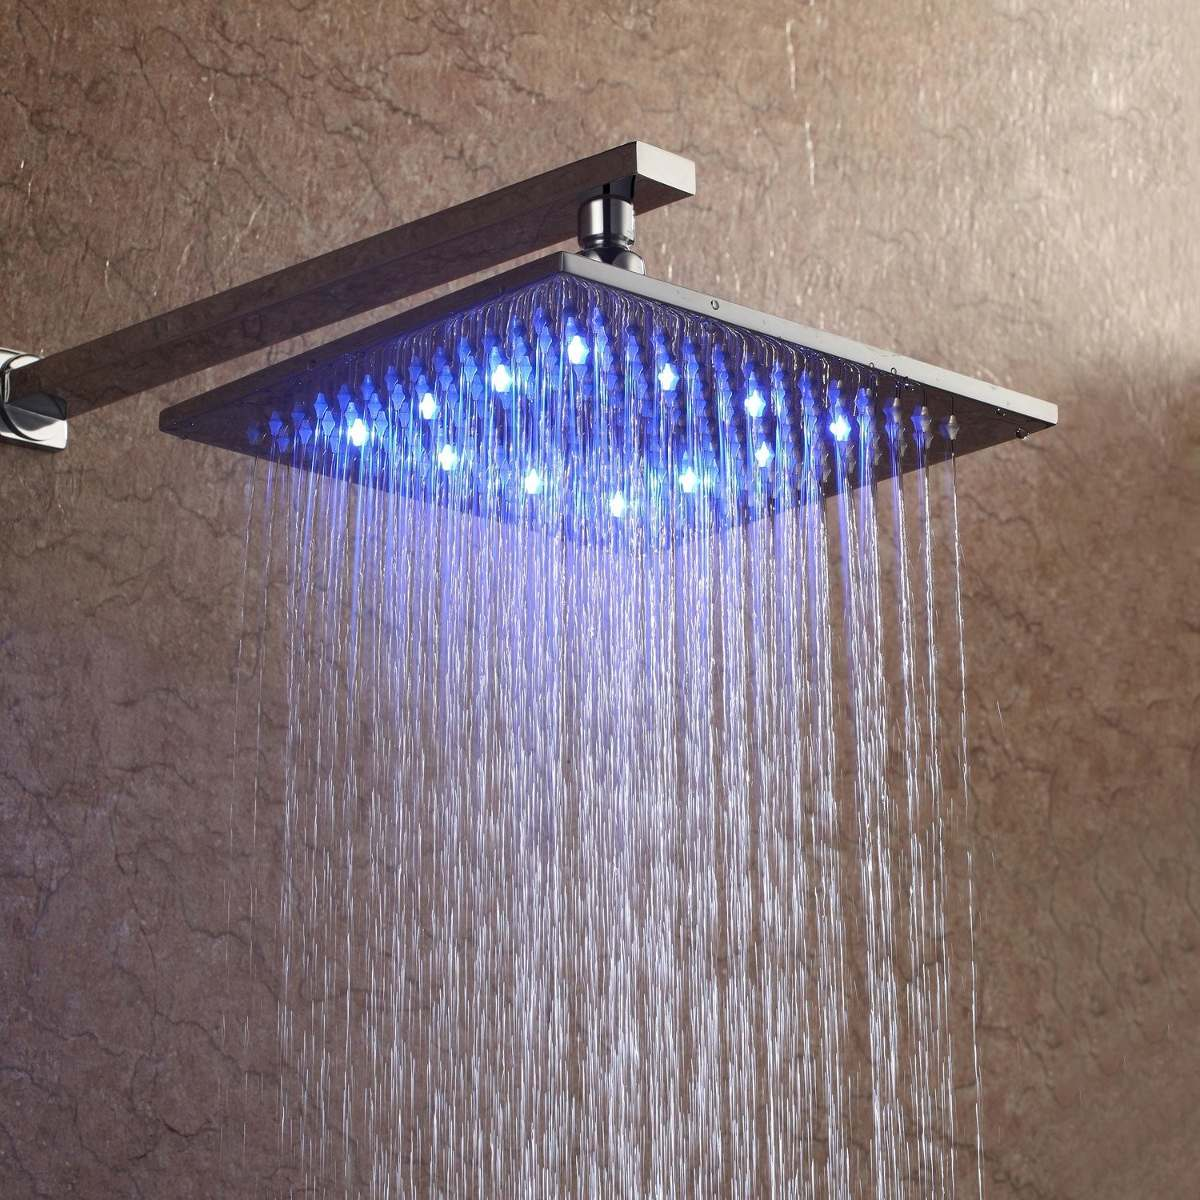 Regadera moderna cambia de color ducha con led 2 925 for Precio de regaderas